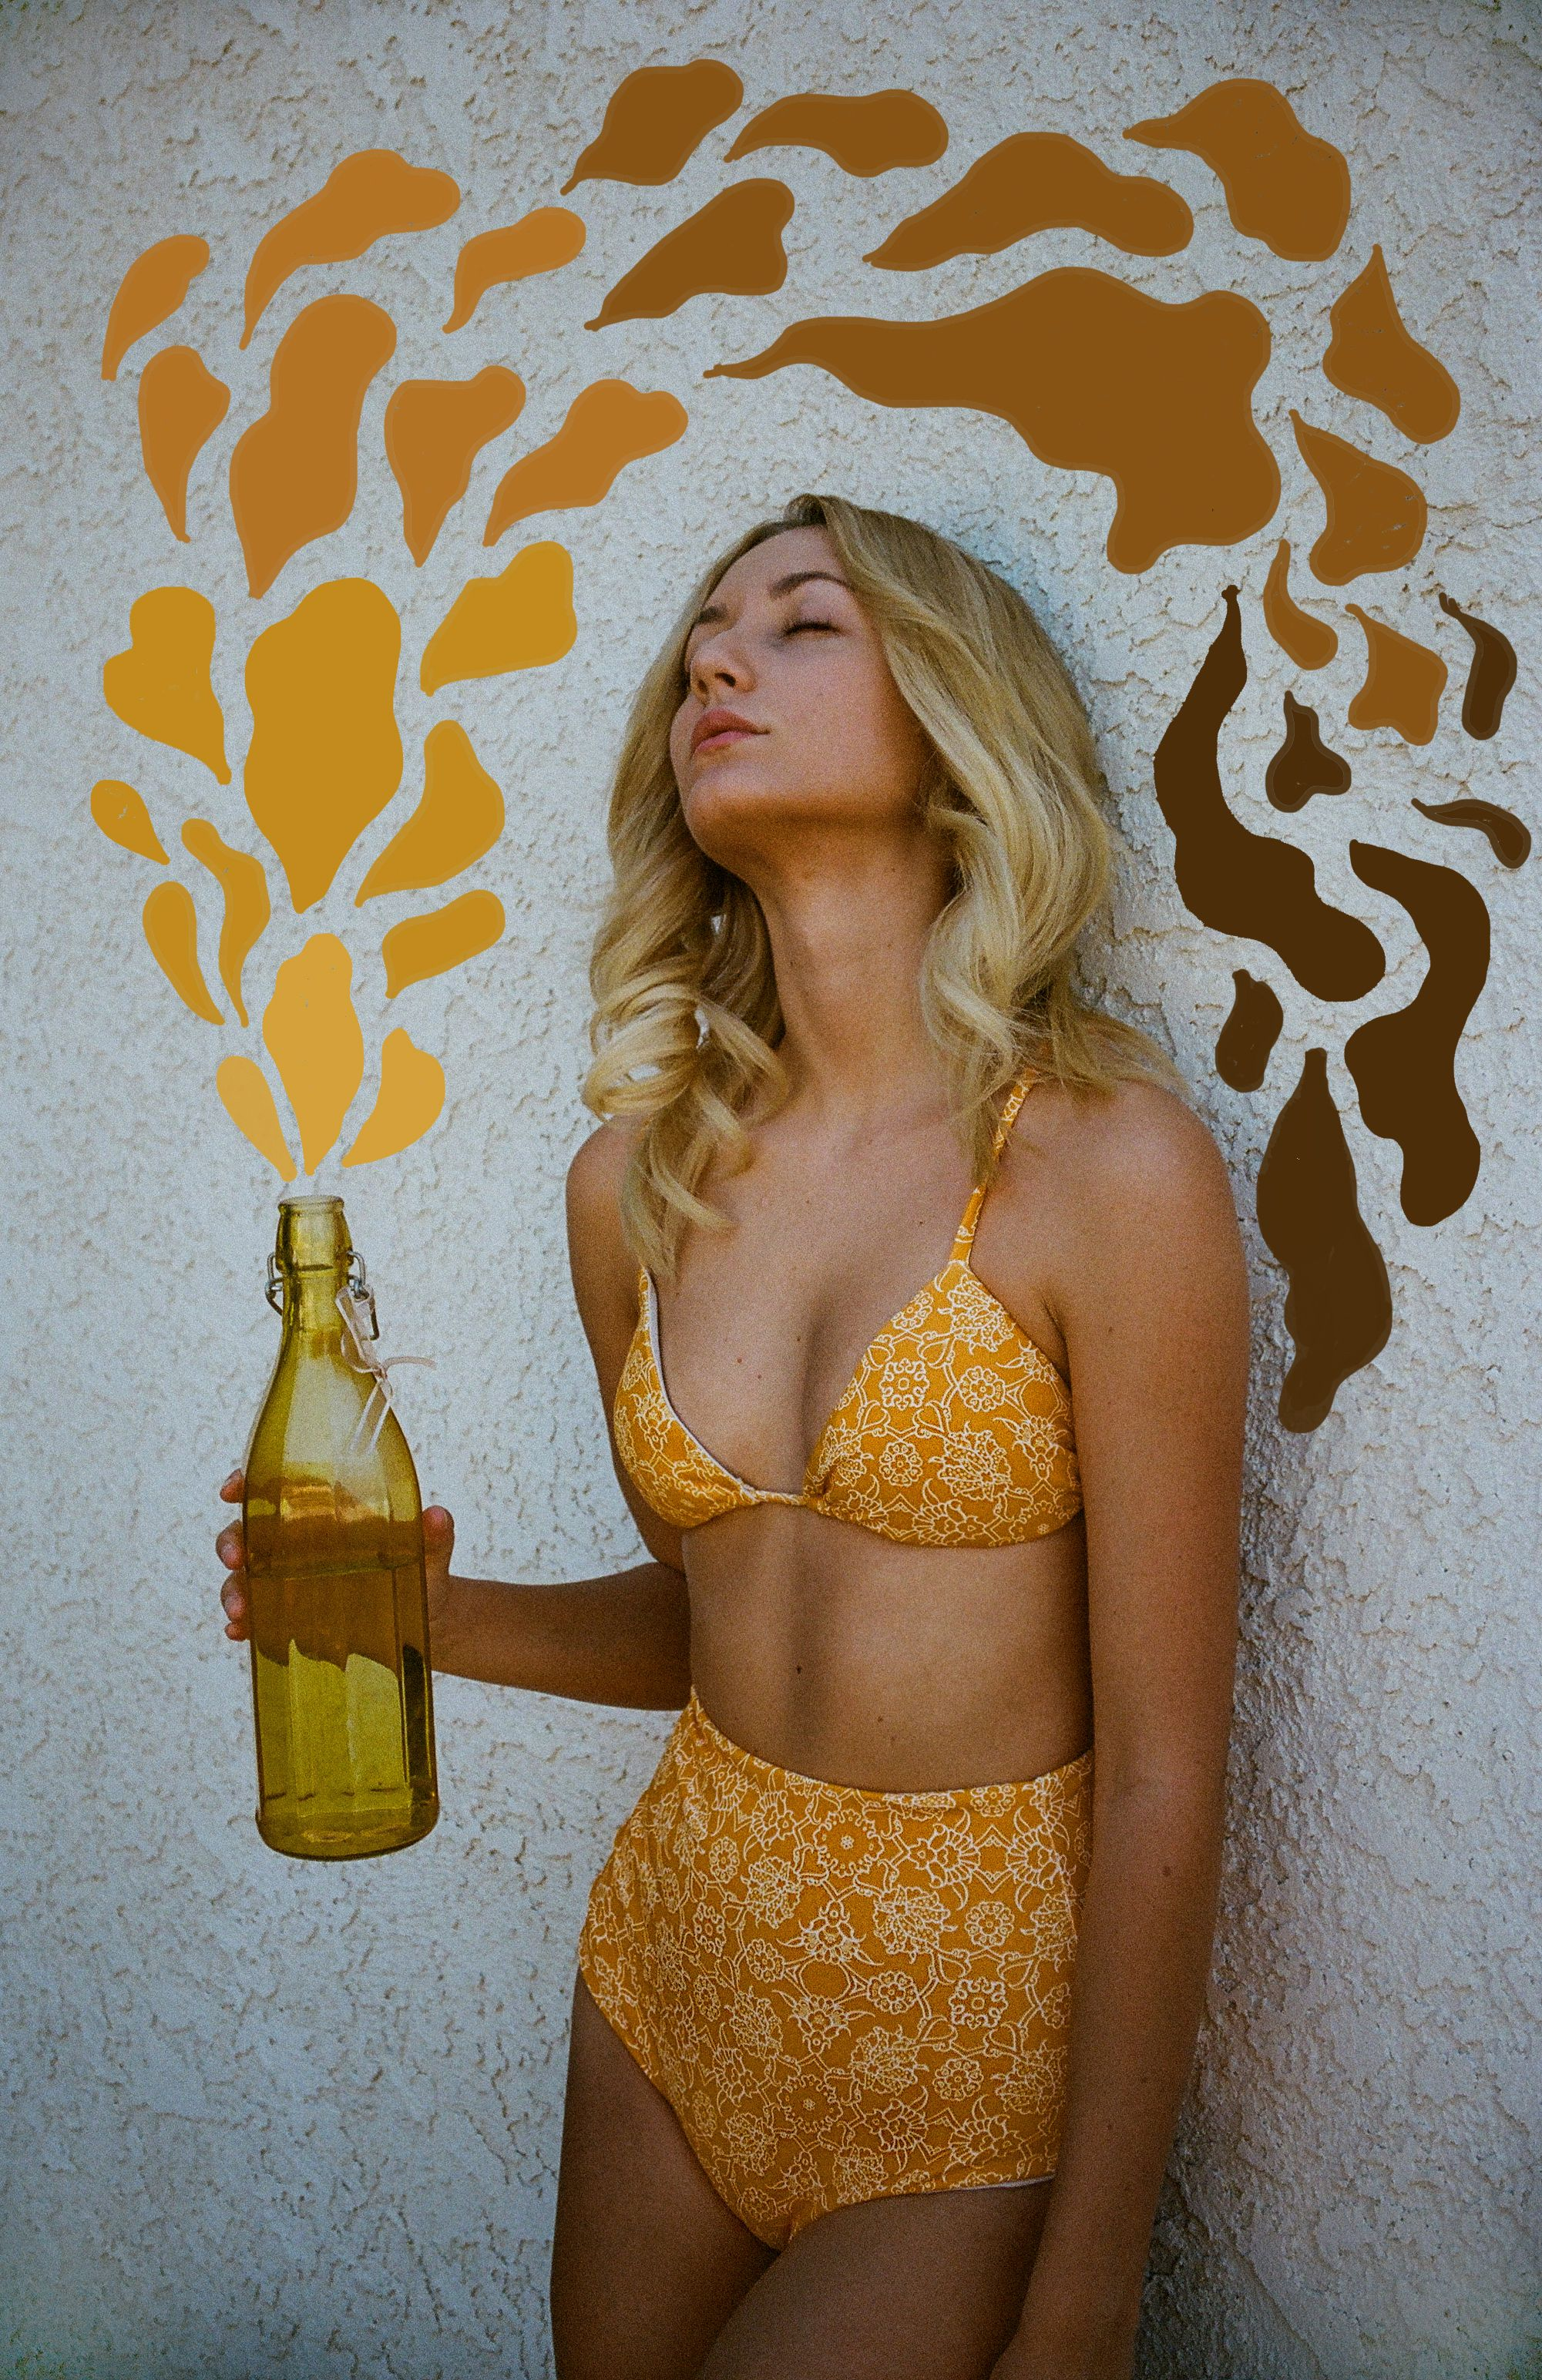 Buttercup Tile print 'clara' top and 'katie' bottoms. Pic and art by Dana Trippe